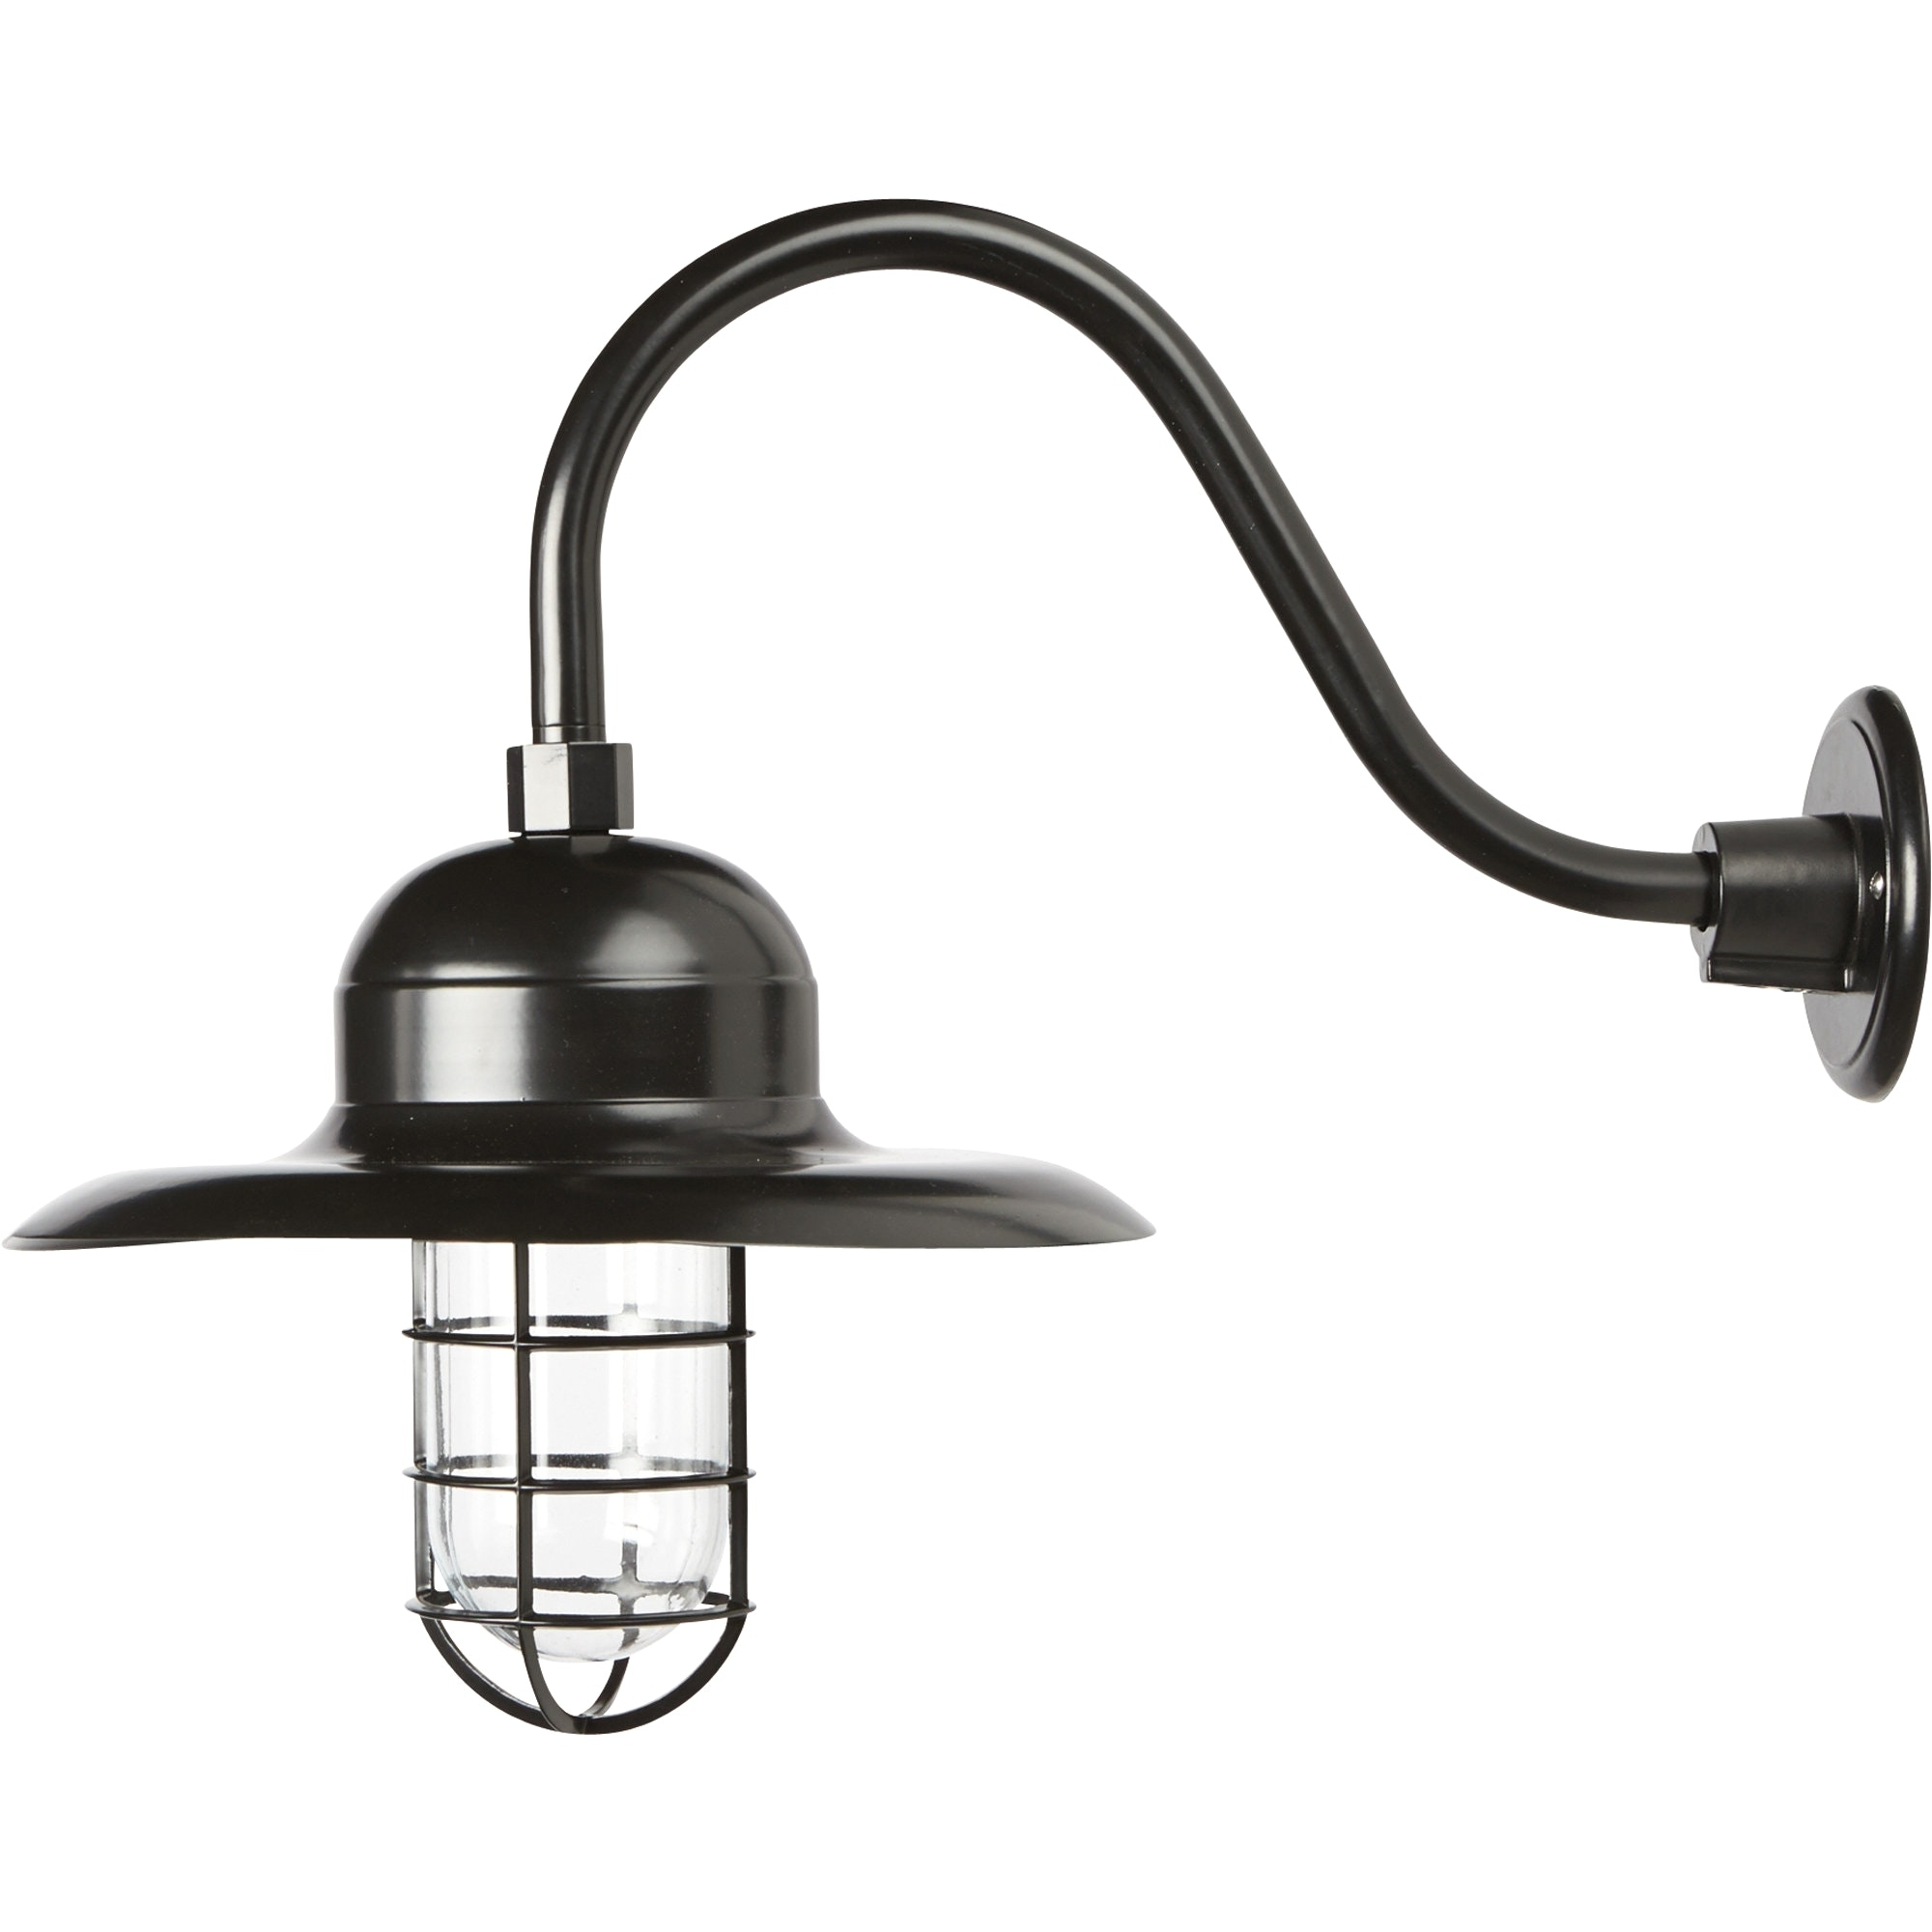 Vintage Exterior Lighting Barn Style Outdoor And Ceiling Fans Home In Most Recent Outdoor Ceiling Fans For Barns (View 15 of 20)